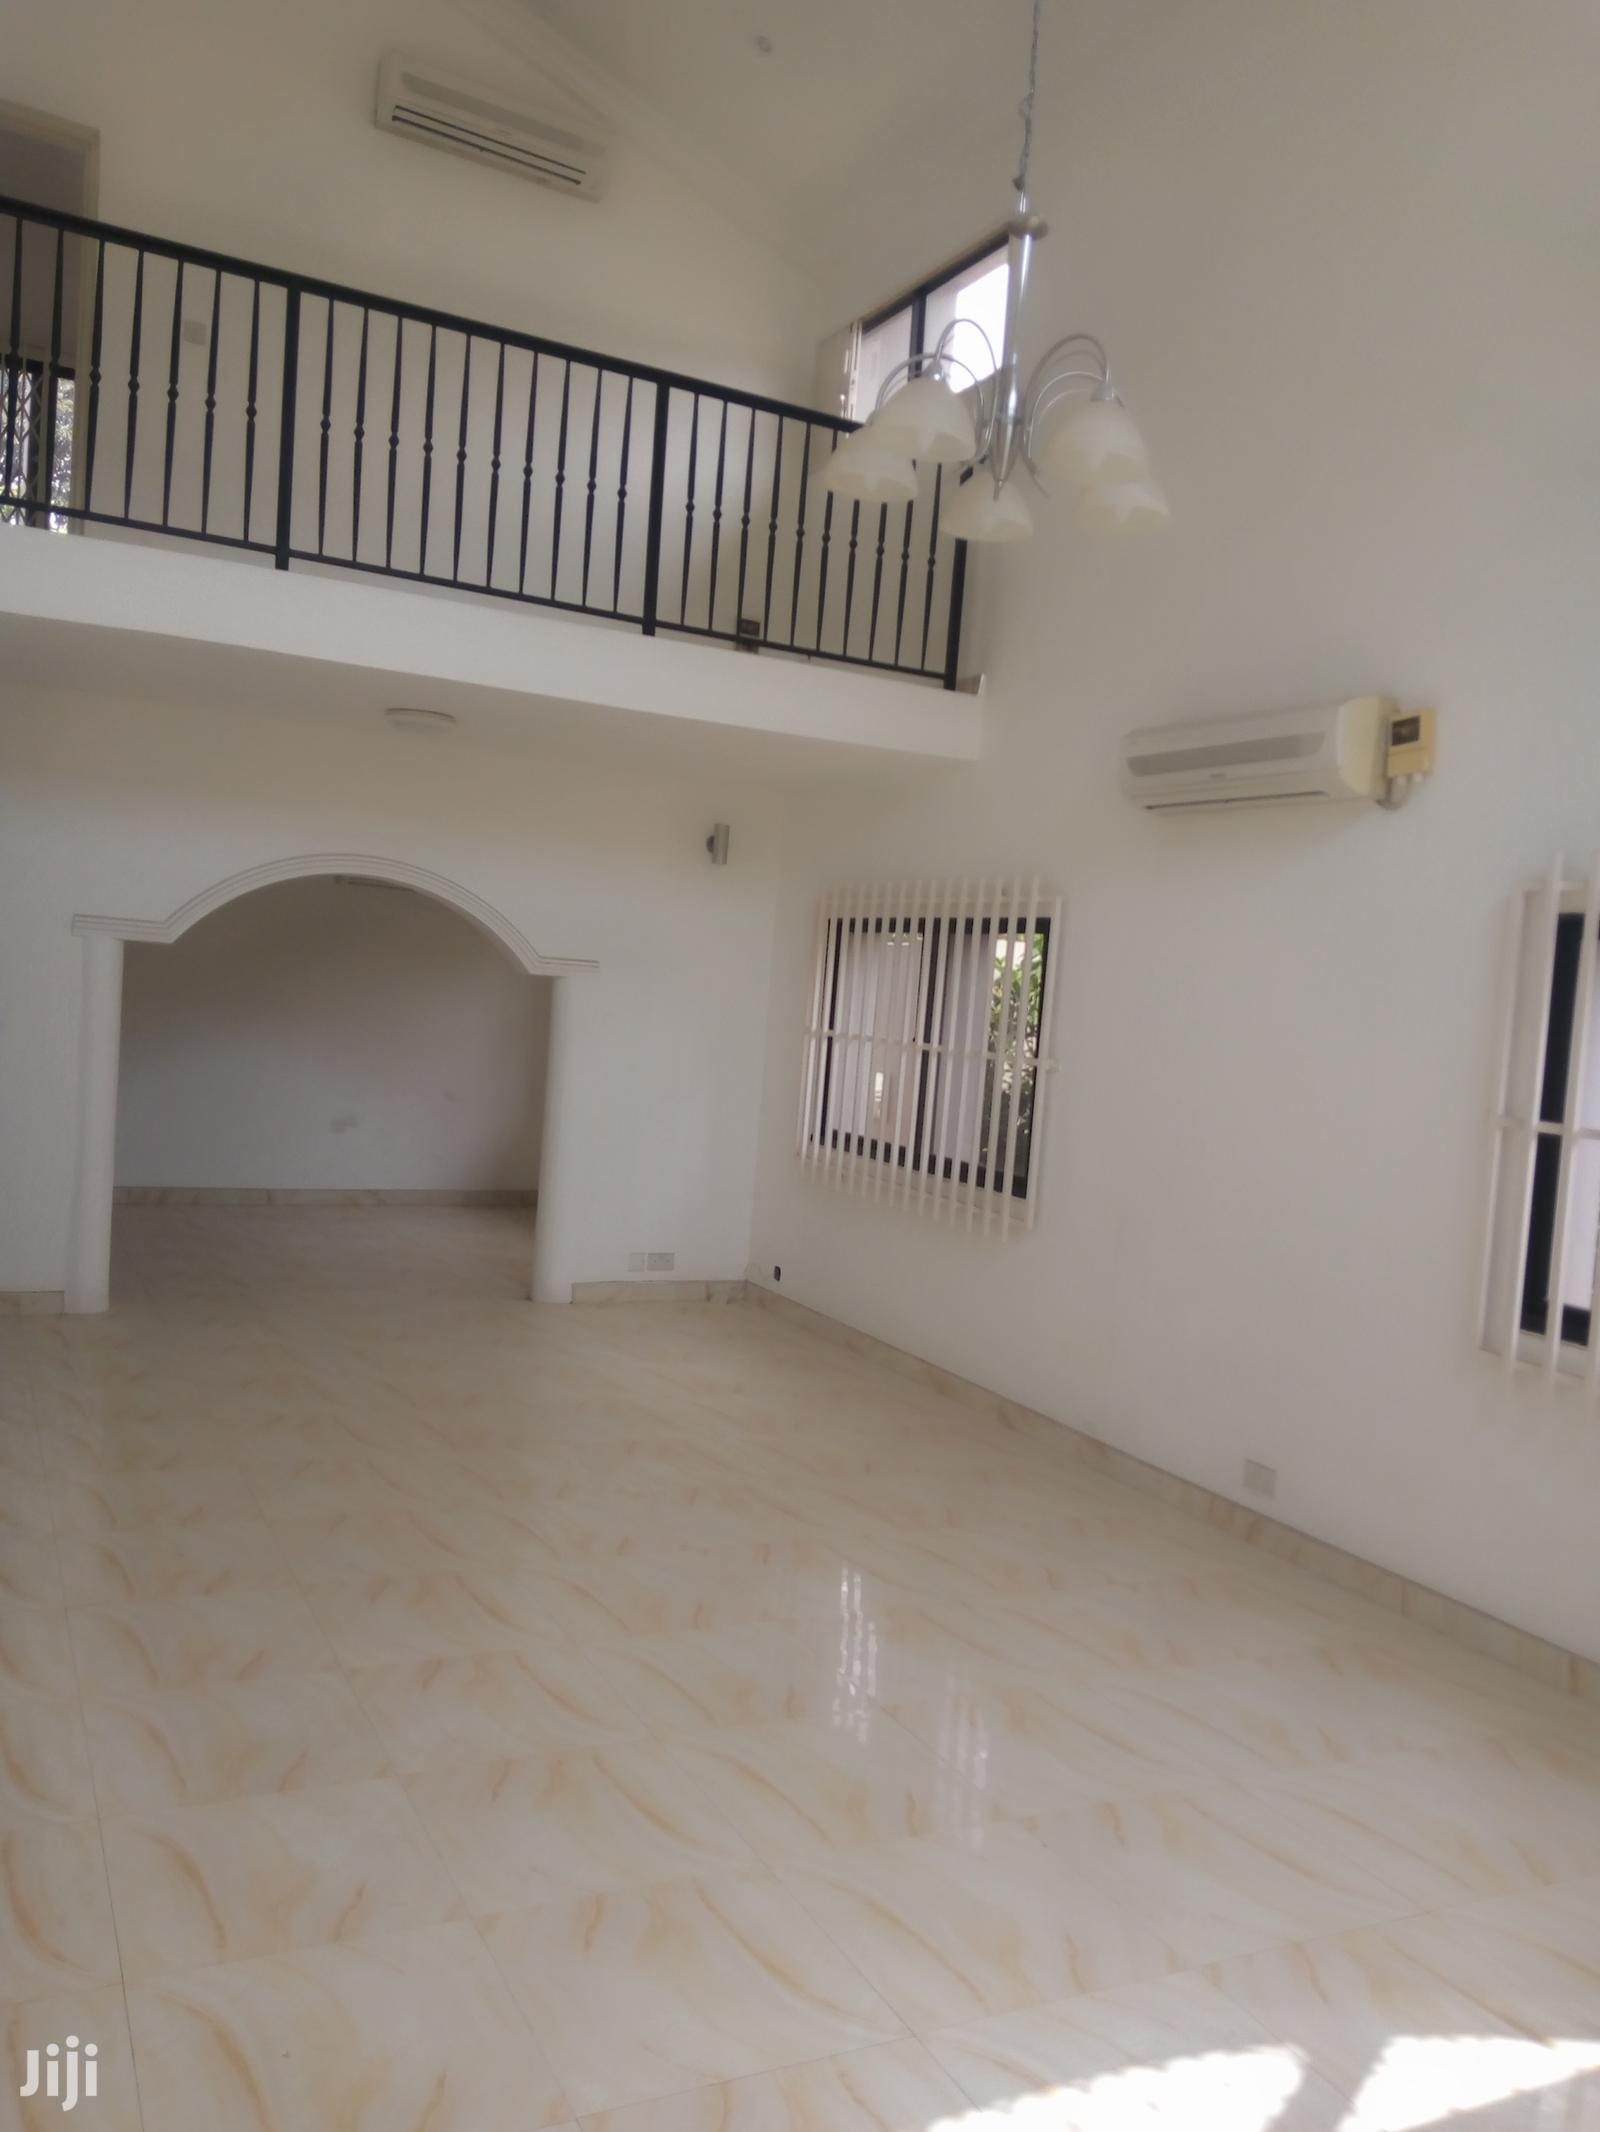 A 4 Bedroom House for Rent at North Ridge Luxurious Fixture | Houses & Apartments For Rent for sale in Roman Ridge, Greater Accra, Ghana